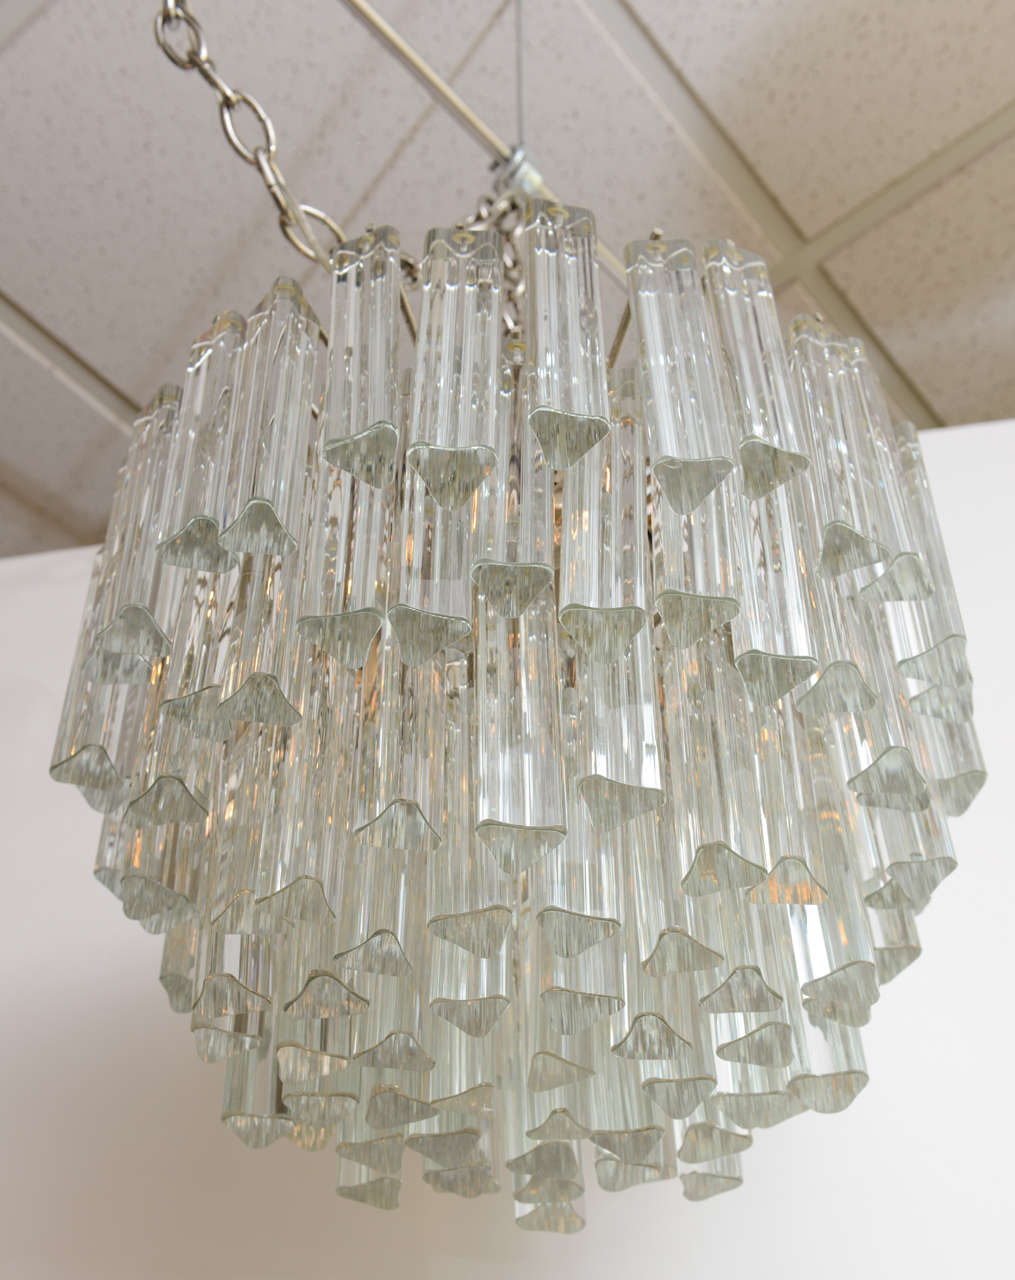 Modern Lush Camer Glass Chandelier with Venini Triedri Crystals For Sale